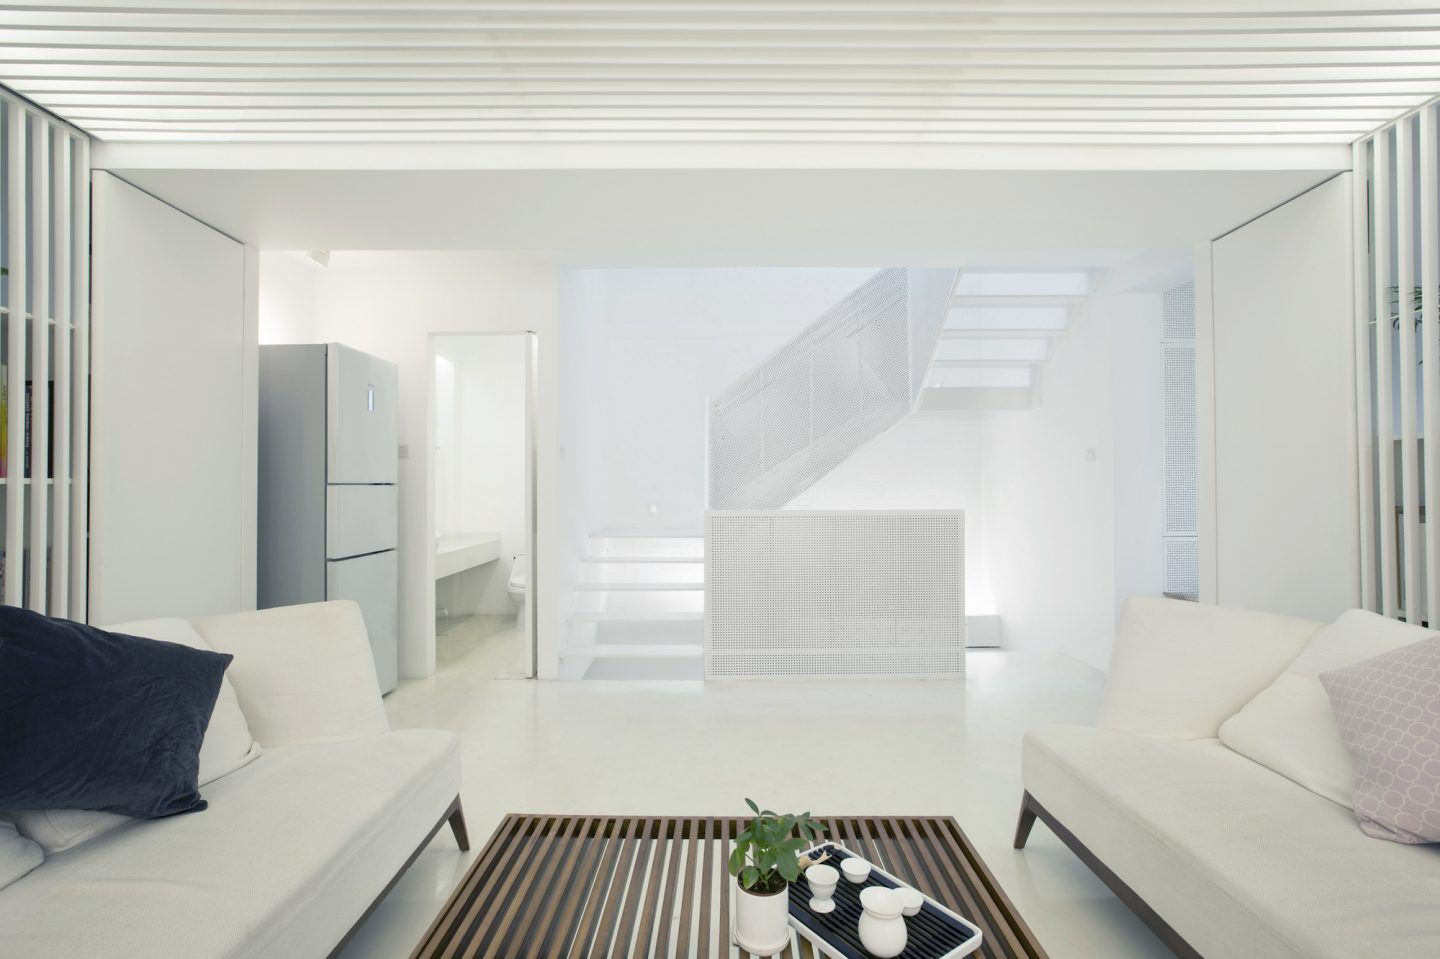 IGNANT-Architecture-Arch-Studio-Hutong-House-06